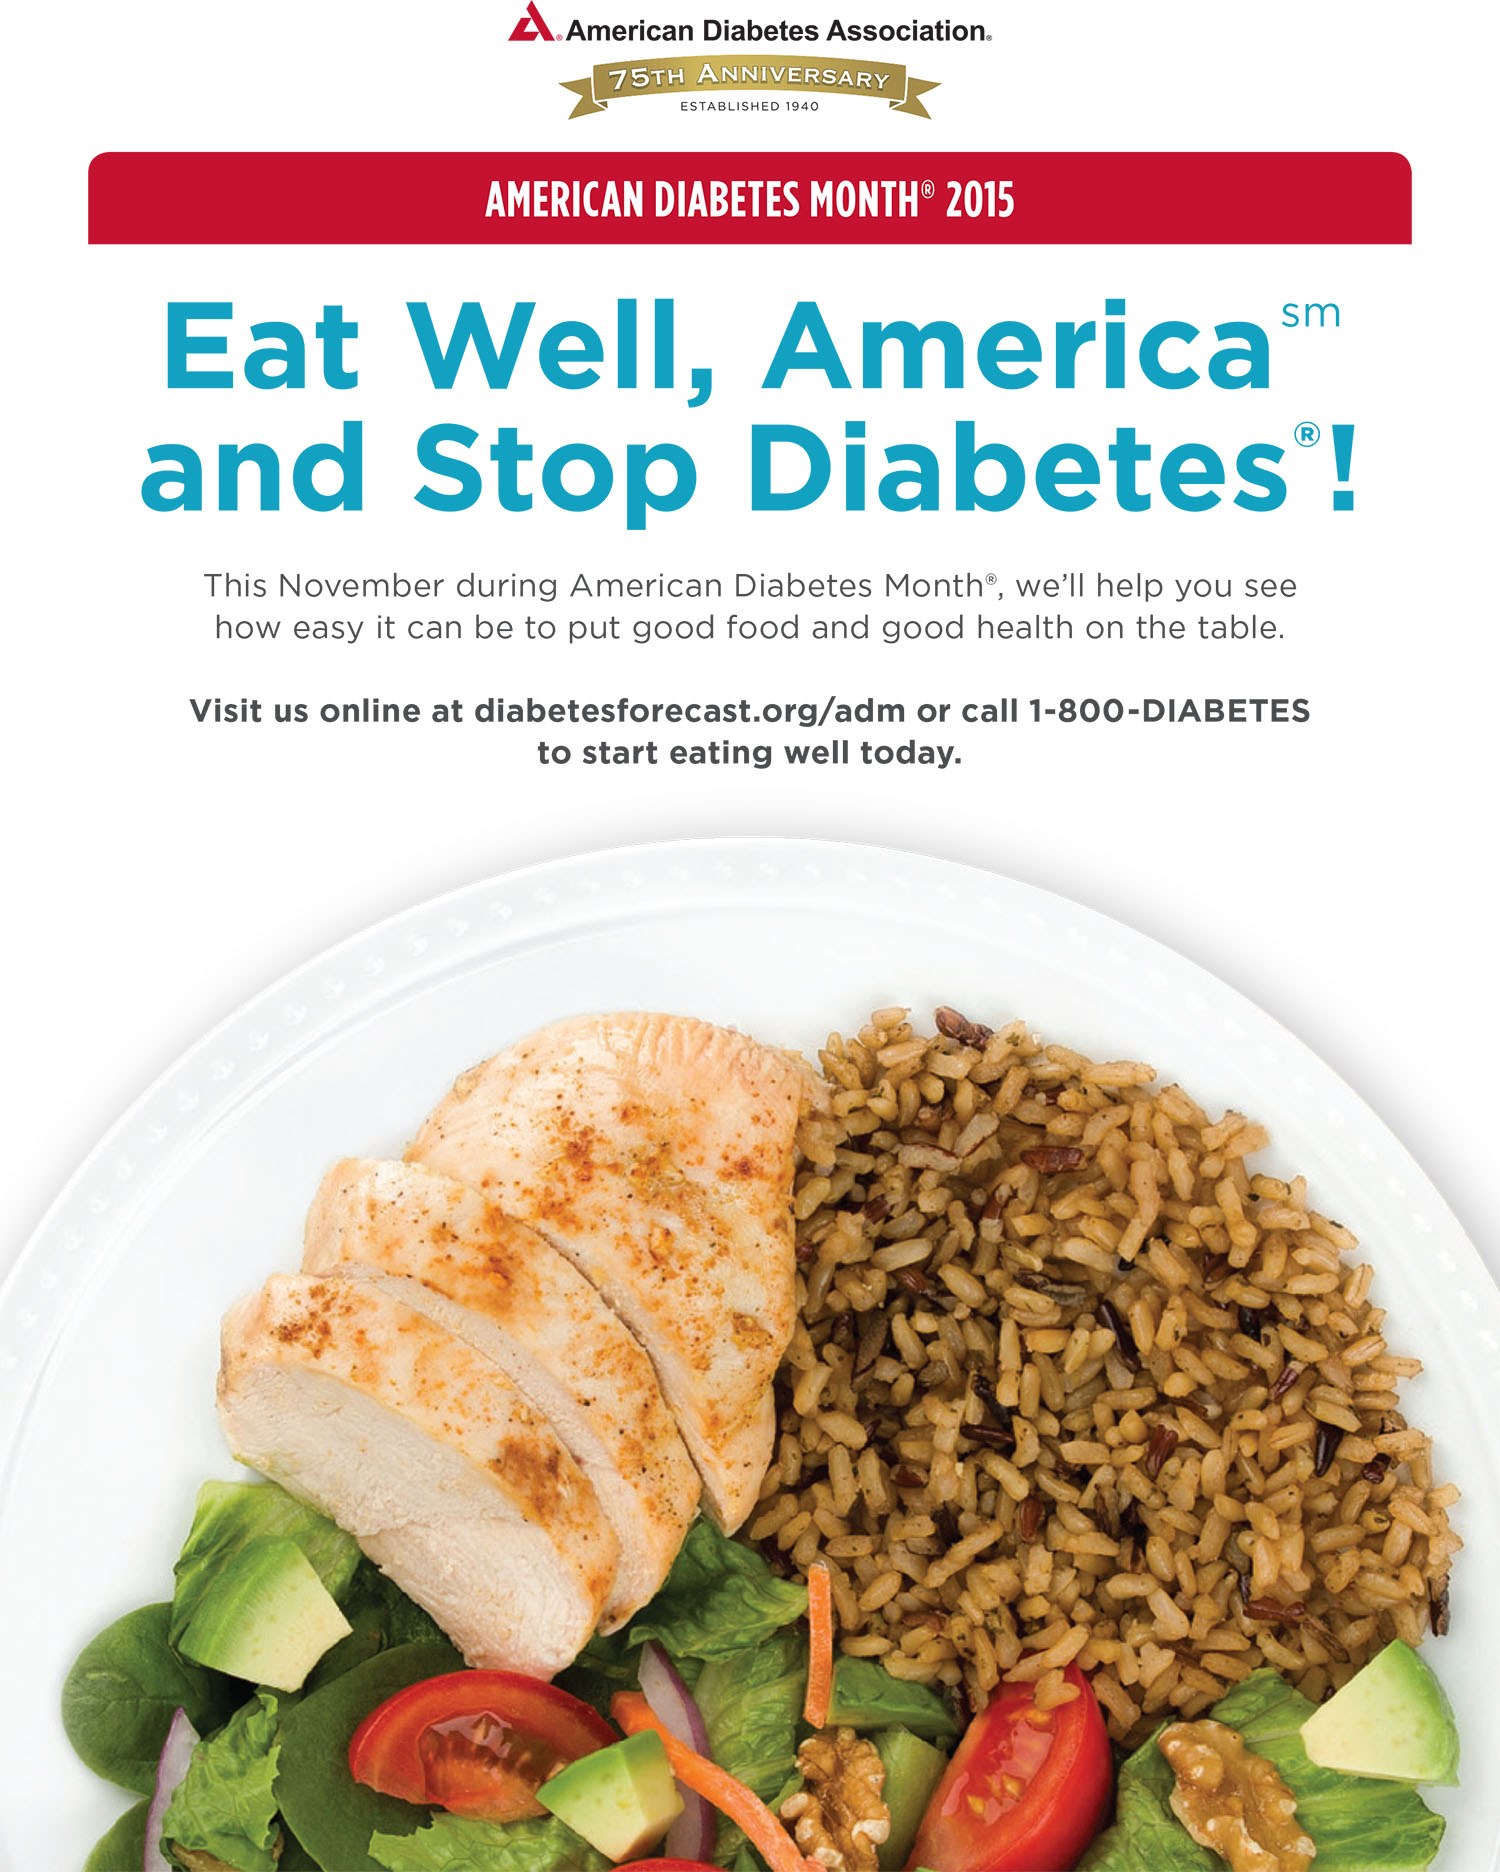 Eat Well, America and Stop Diabetes!